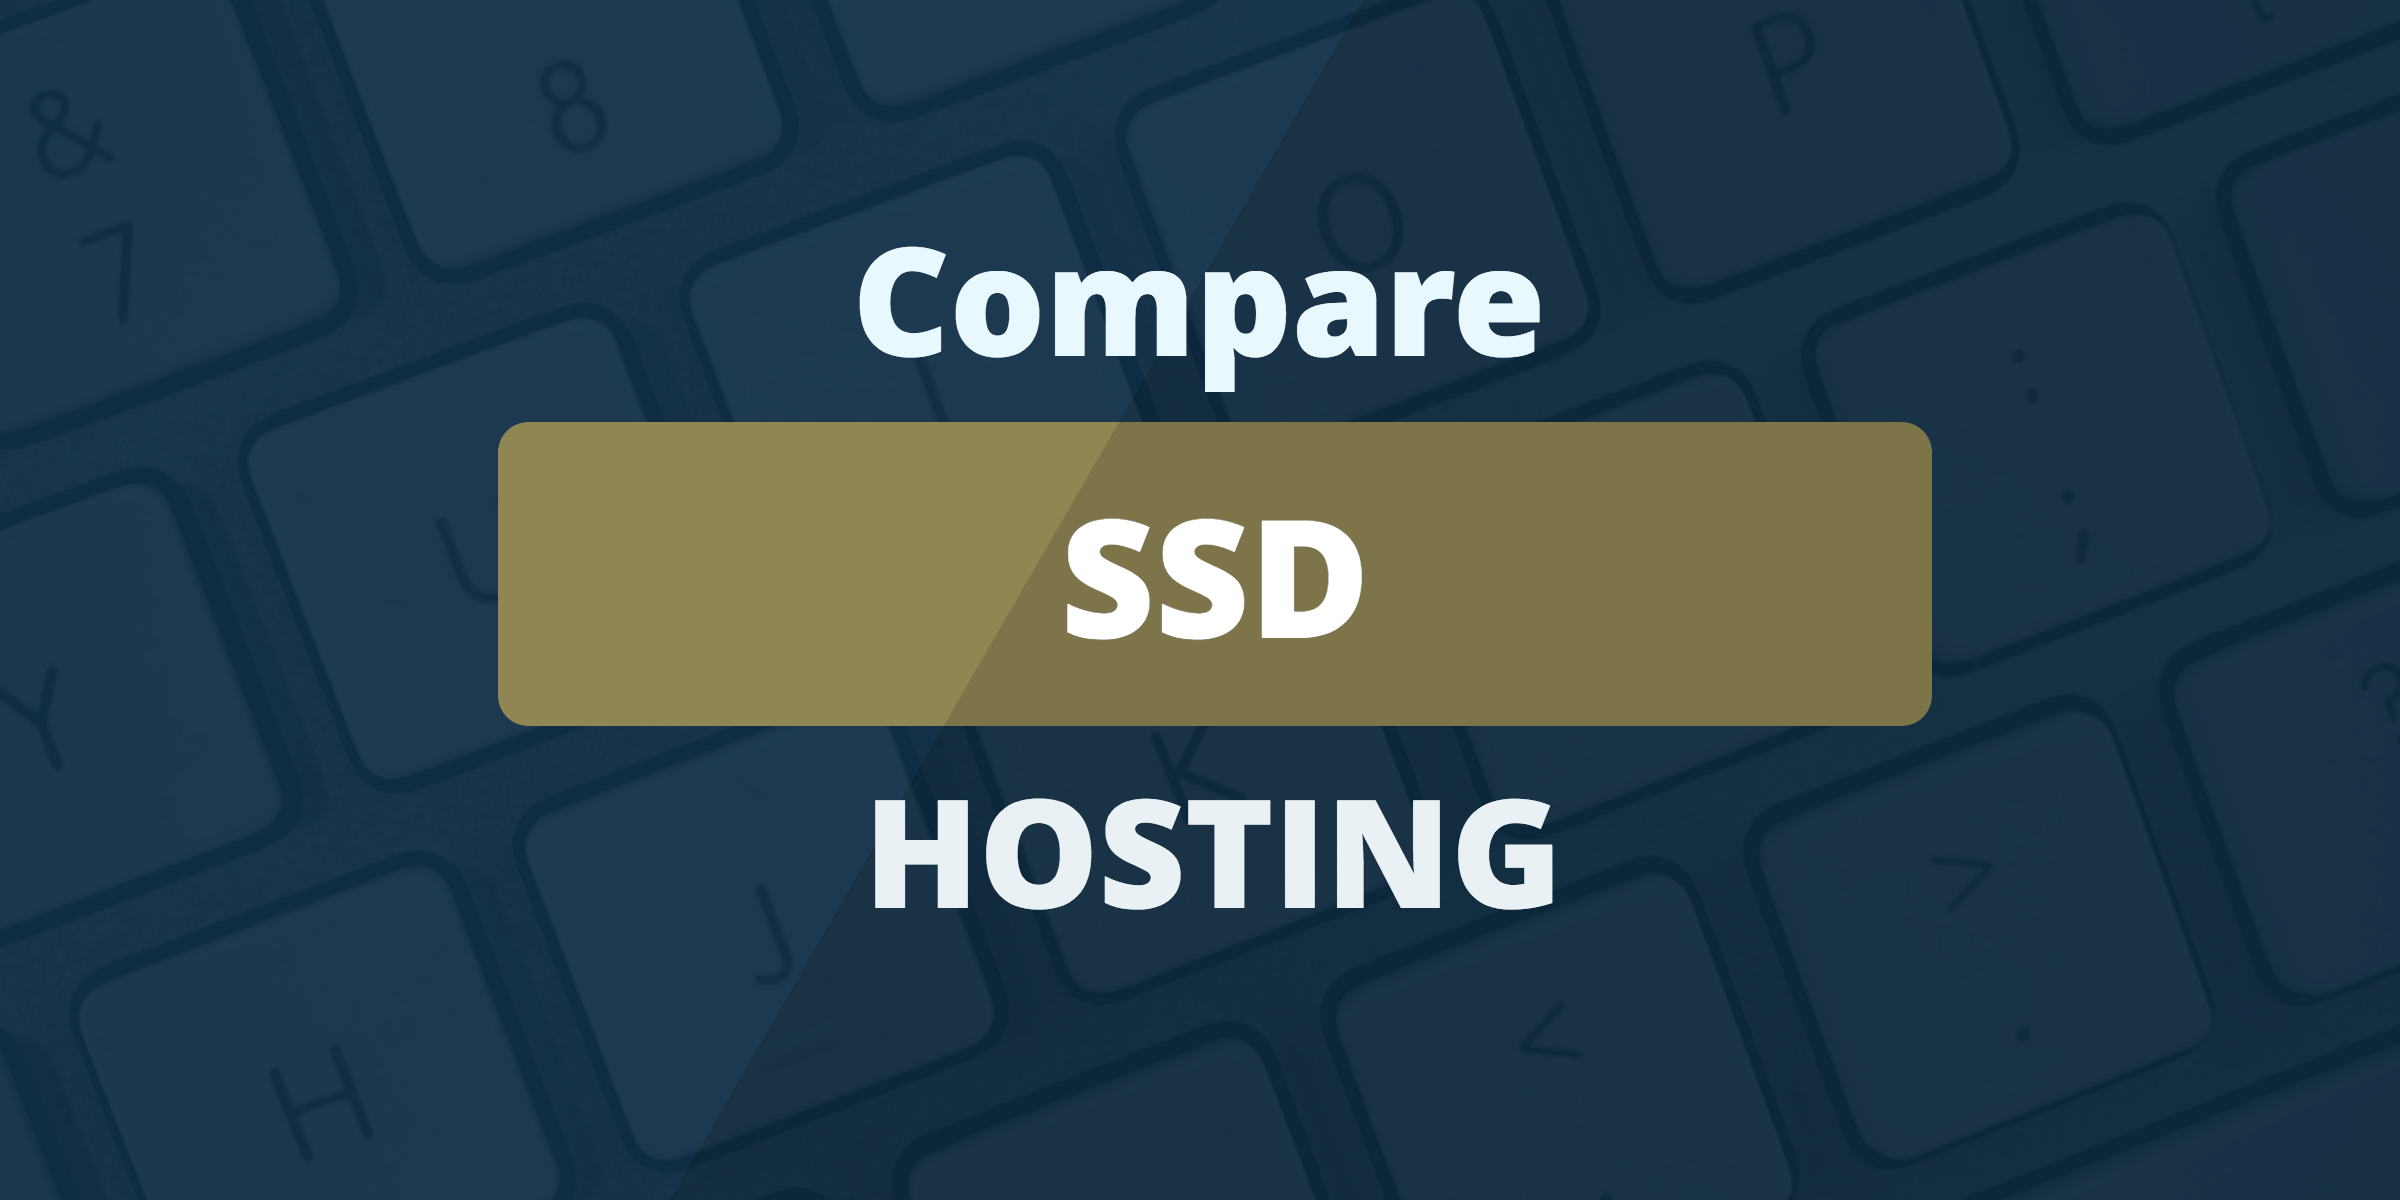 compare ssd hosting